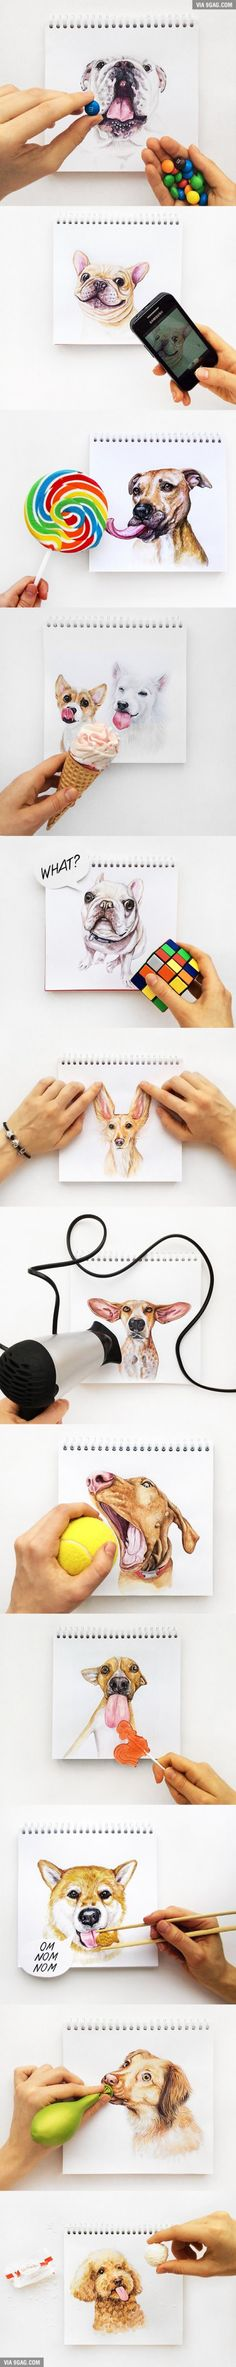 Lovely Illustrations That Connect Dog Paintings With Human Hands (By Valerie Susik)